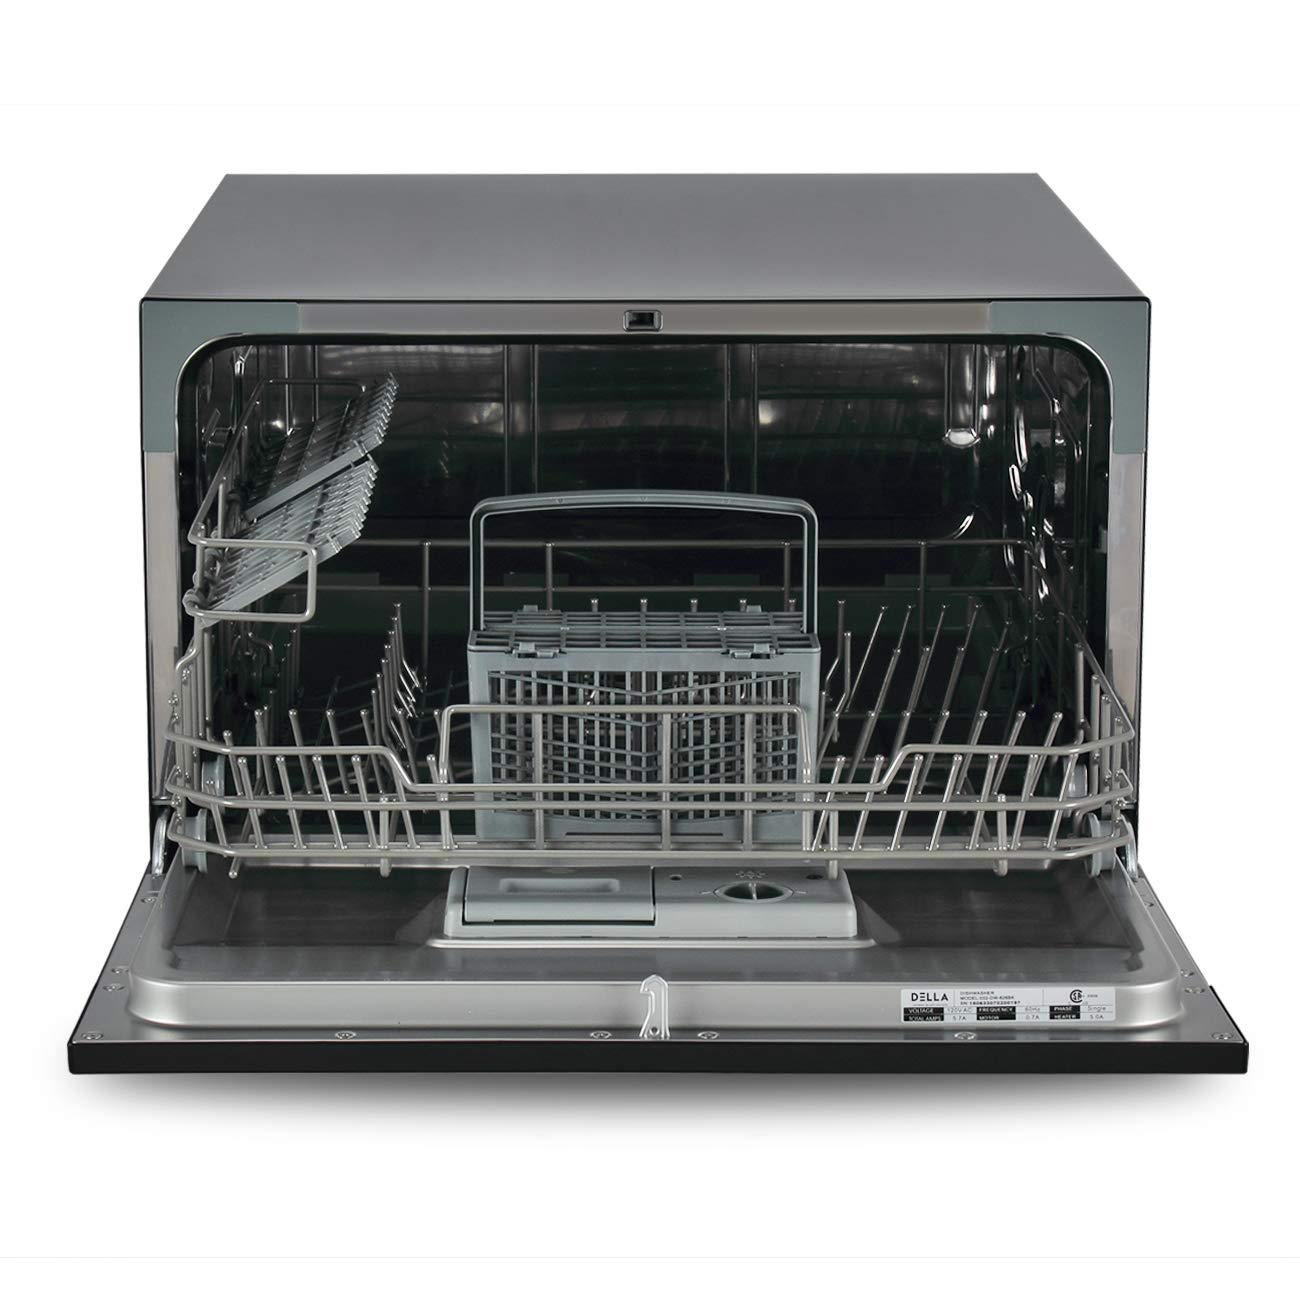 DELLA Portable Compact Countertop Dishwasher 6 Wash Cycles Dishwashers Setting Racks Silverware Basket, Black